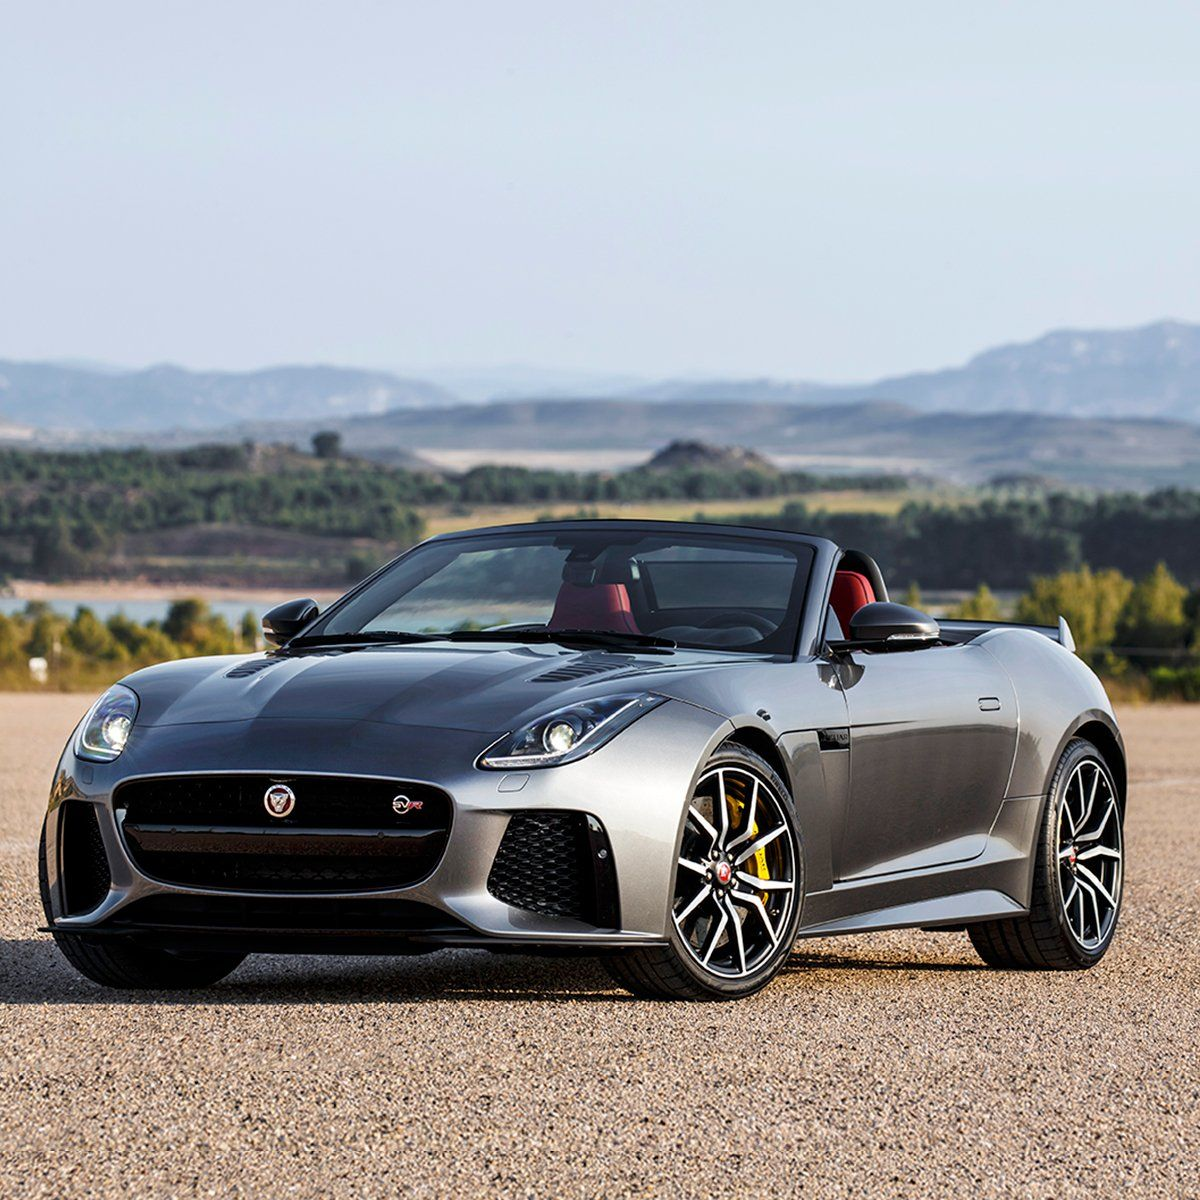 F Type Phenomenal Cars Jaguar F Type Jaguar Cars